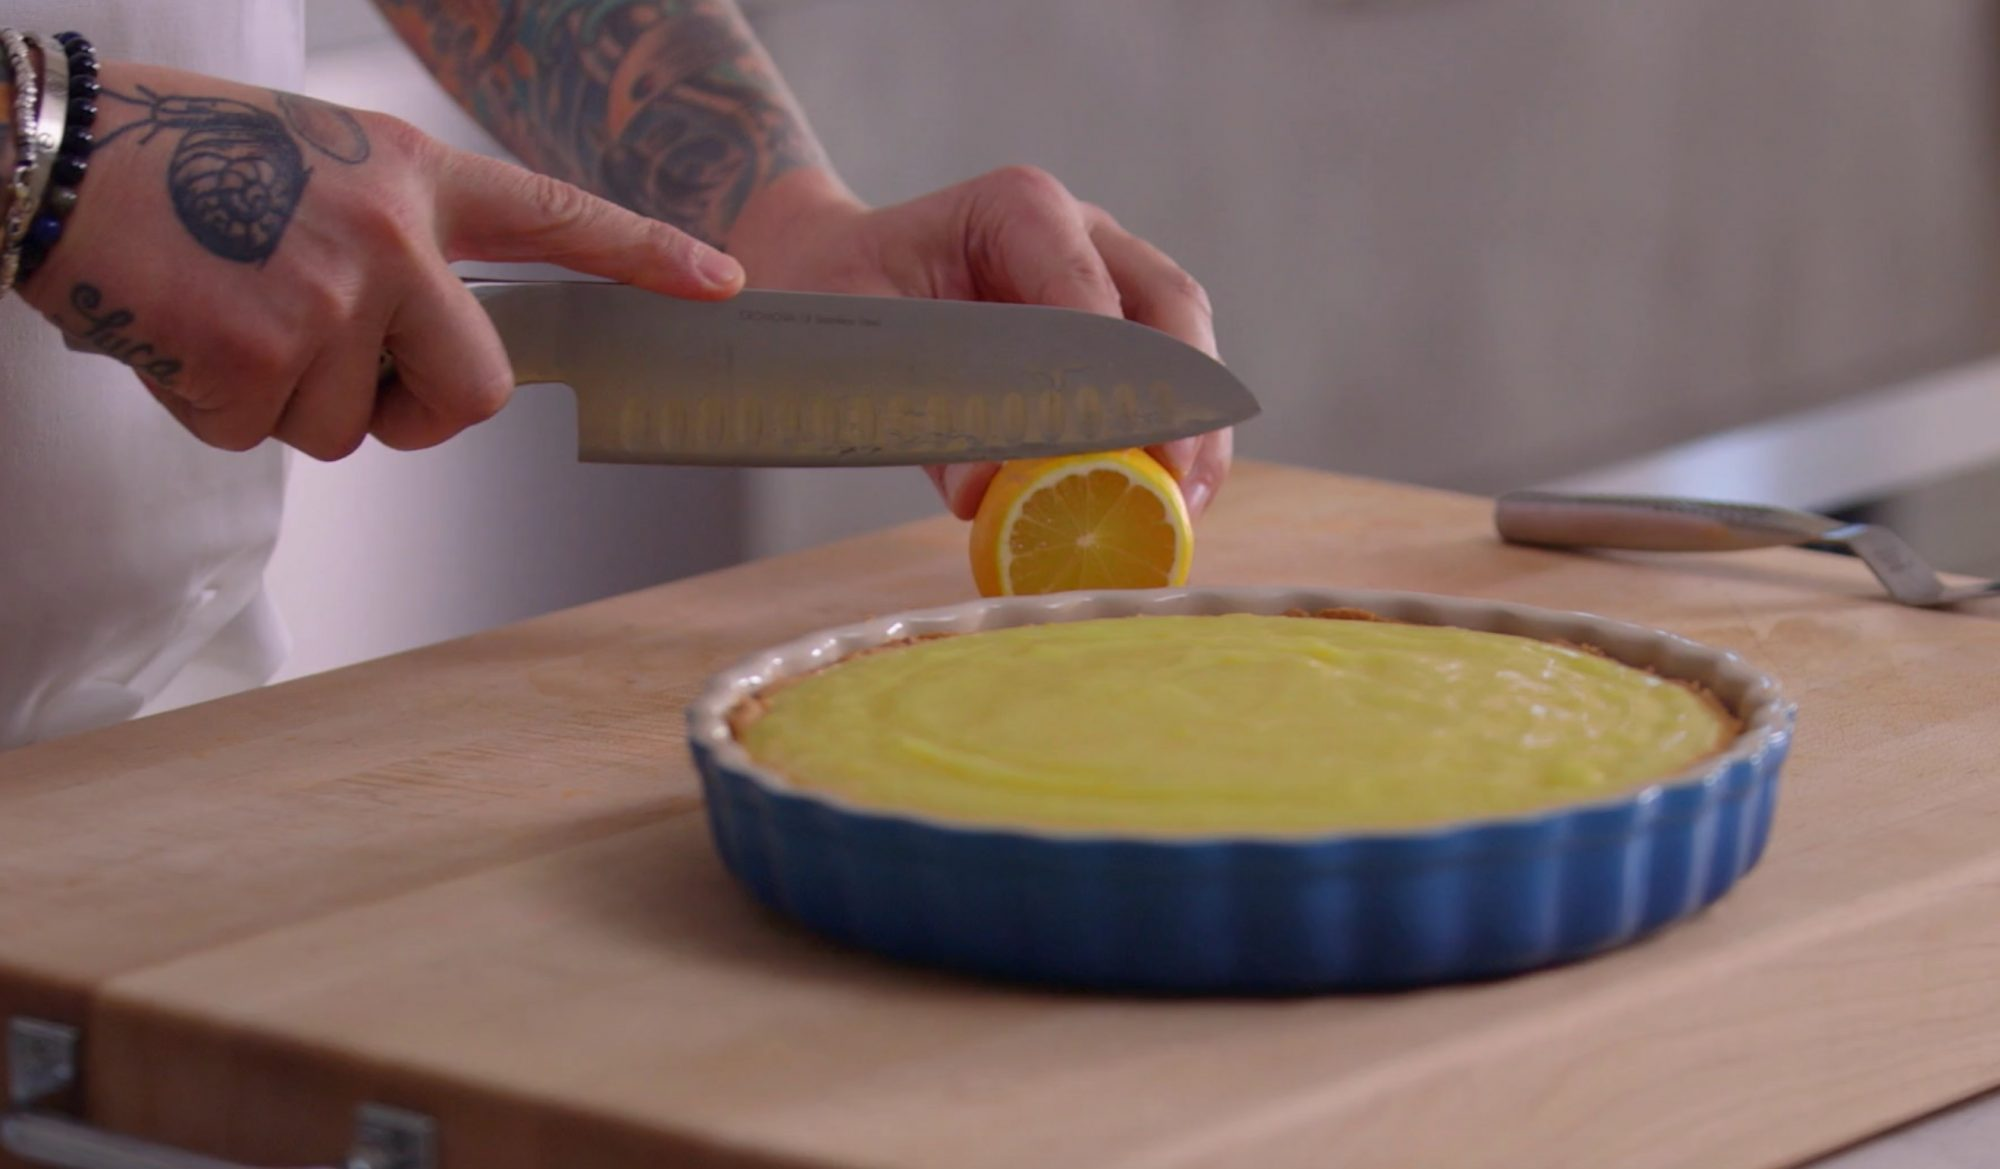 How to Make a Meyer Lemon Tart